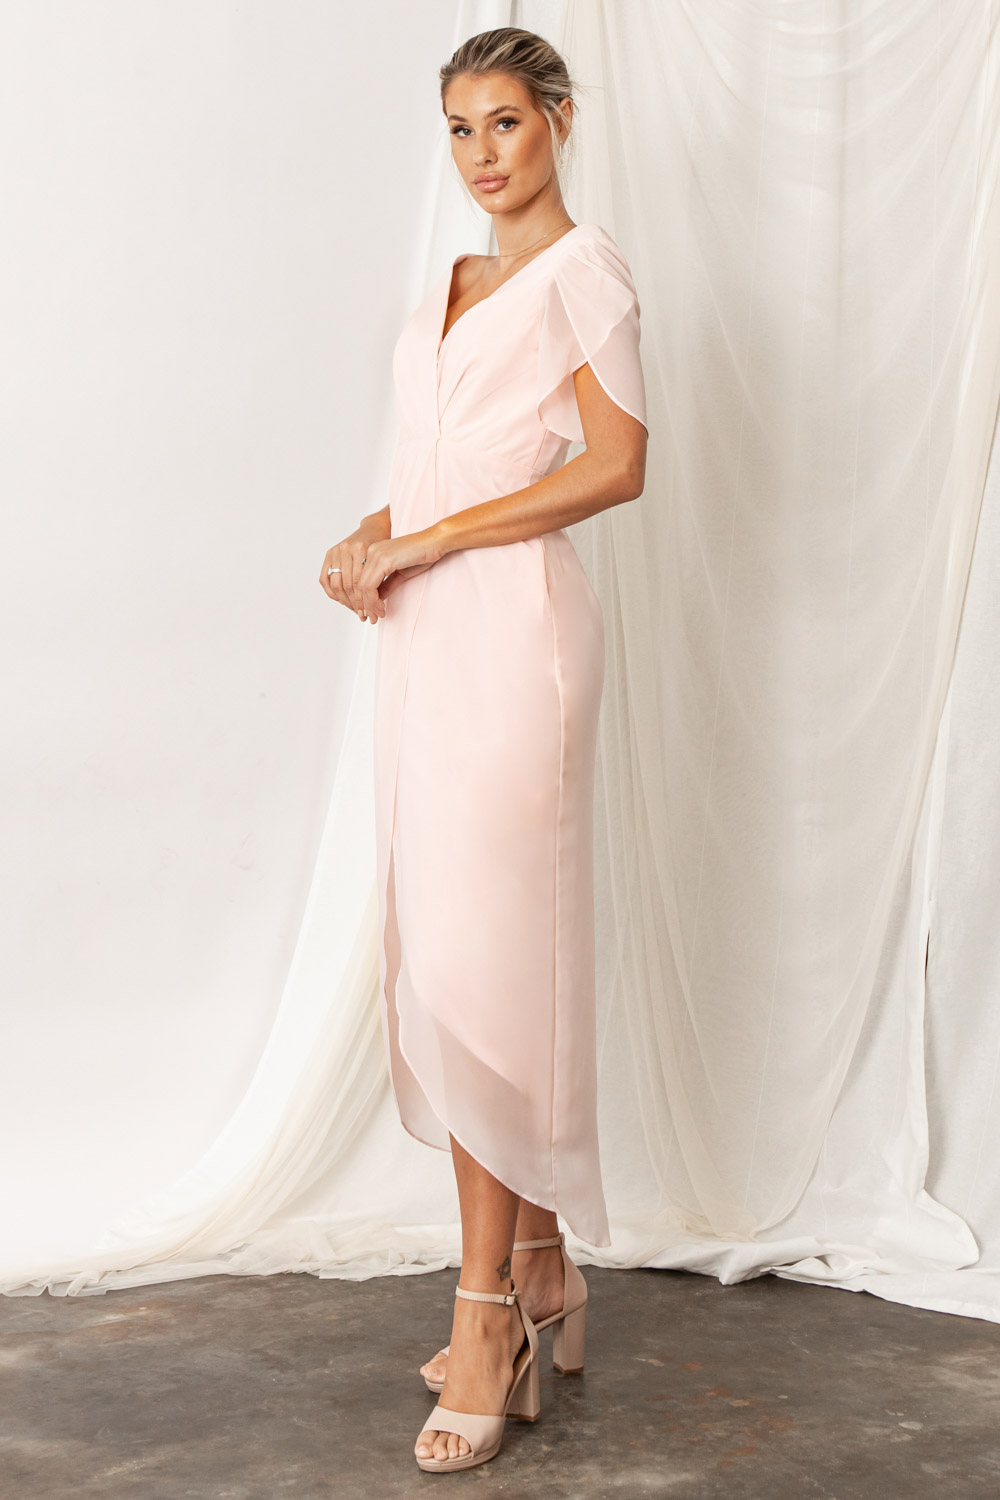 zara-core-bridesmaids-dress-ballerina soft light pink